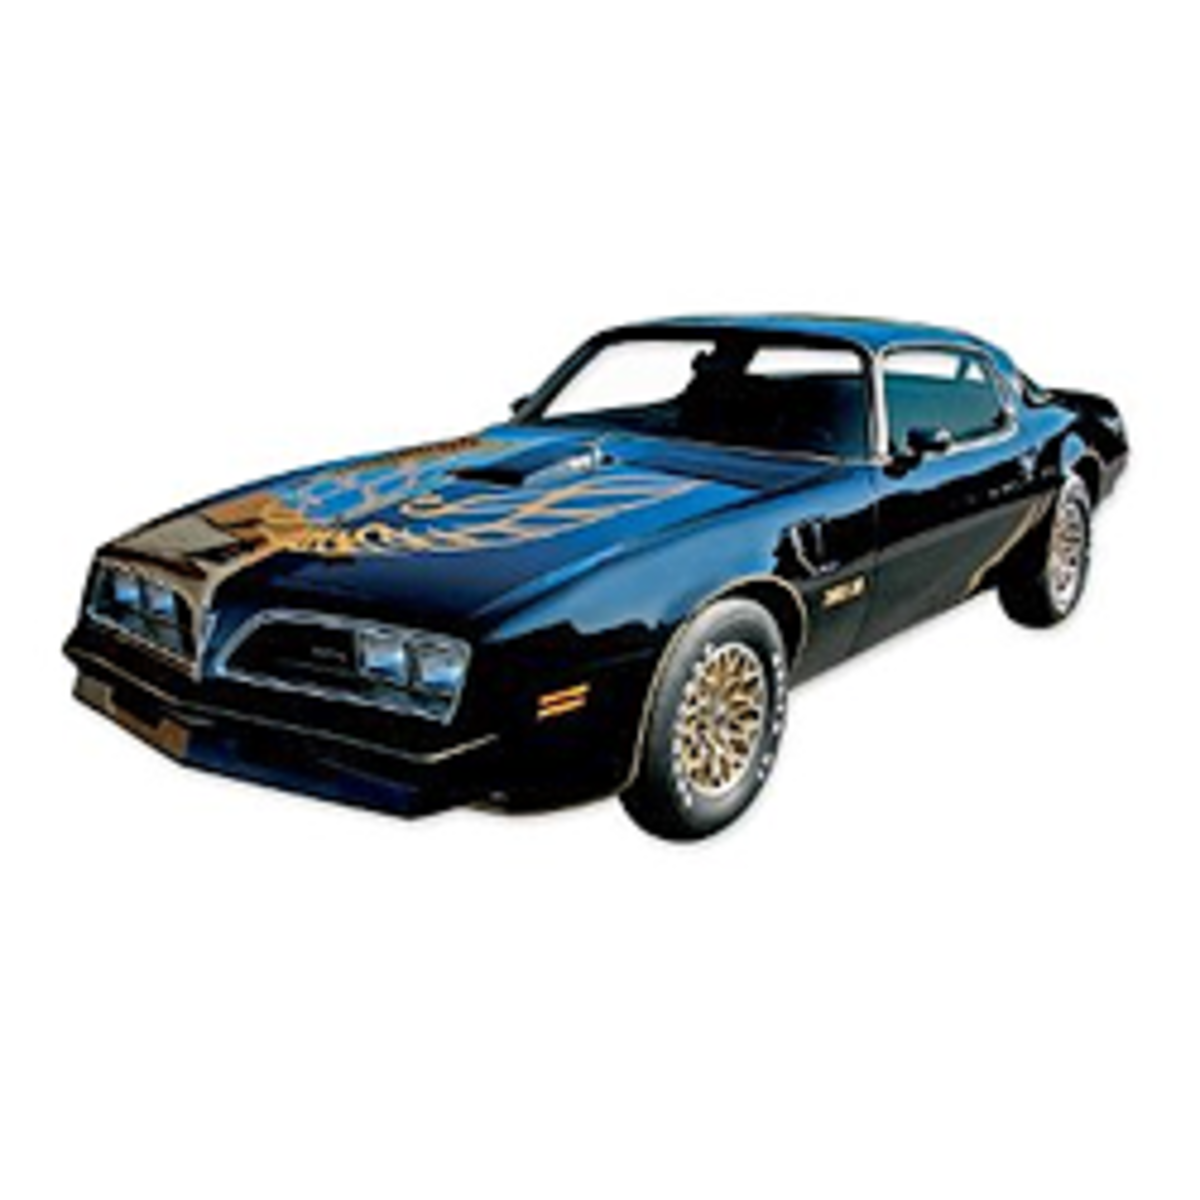 1976 1977 1978 Pontiac Firebird Trans Am Special Edition Bandit Decals